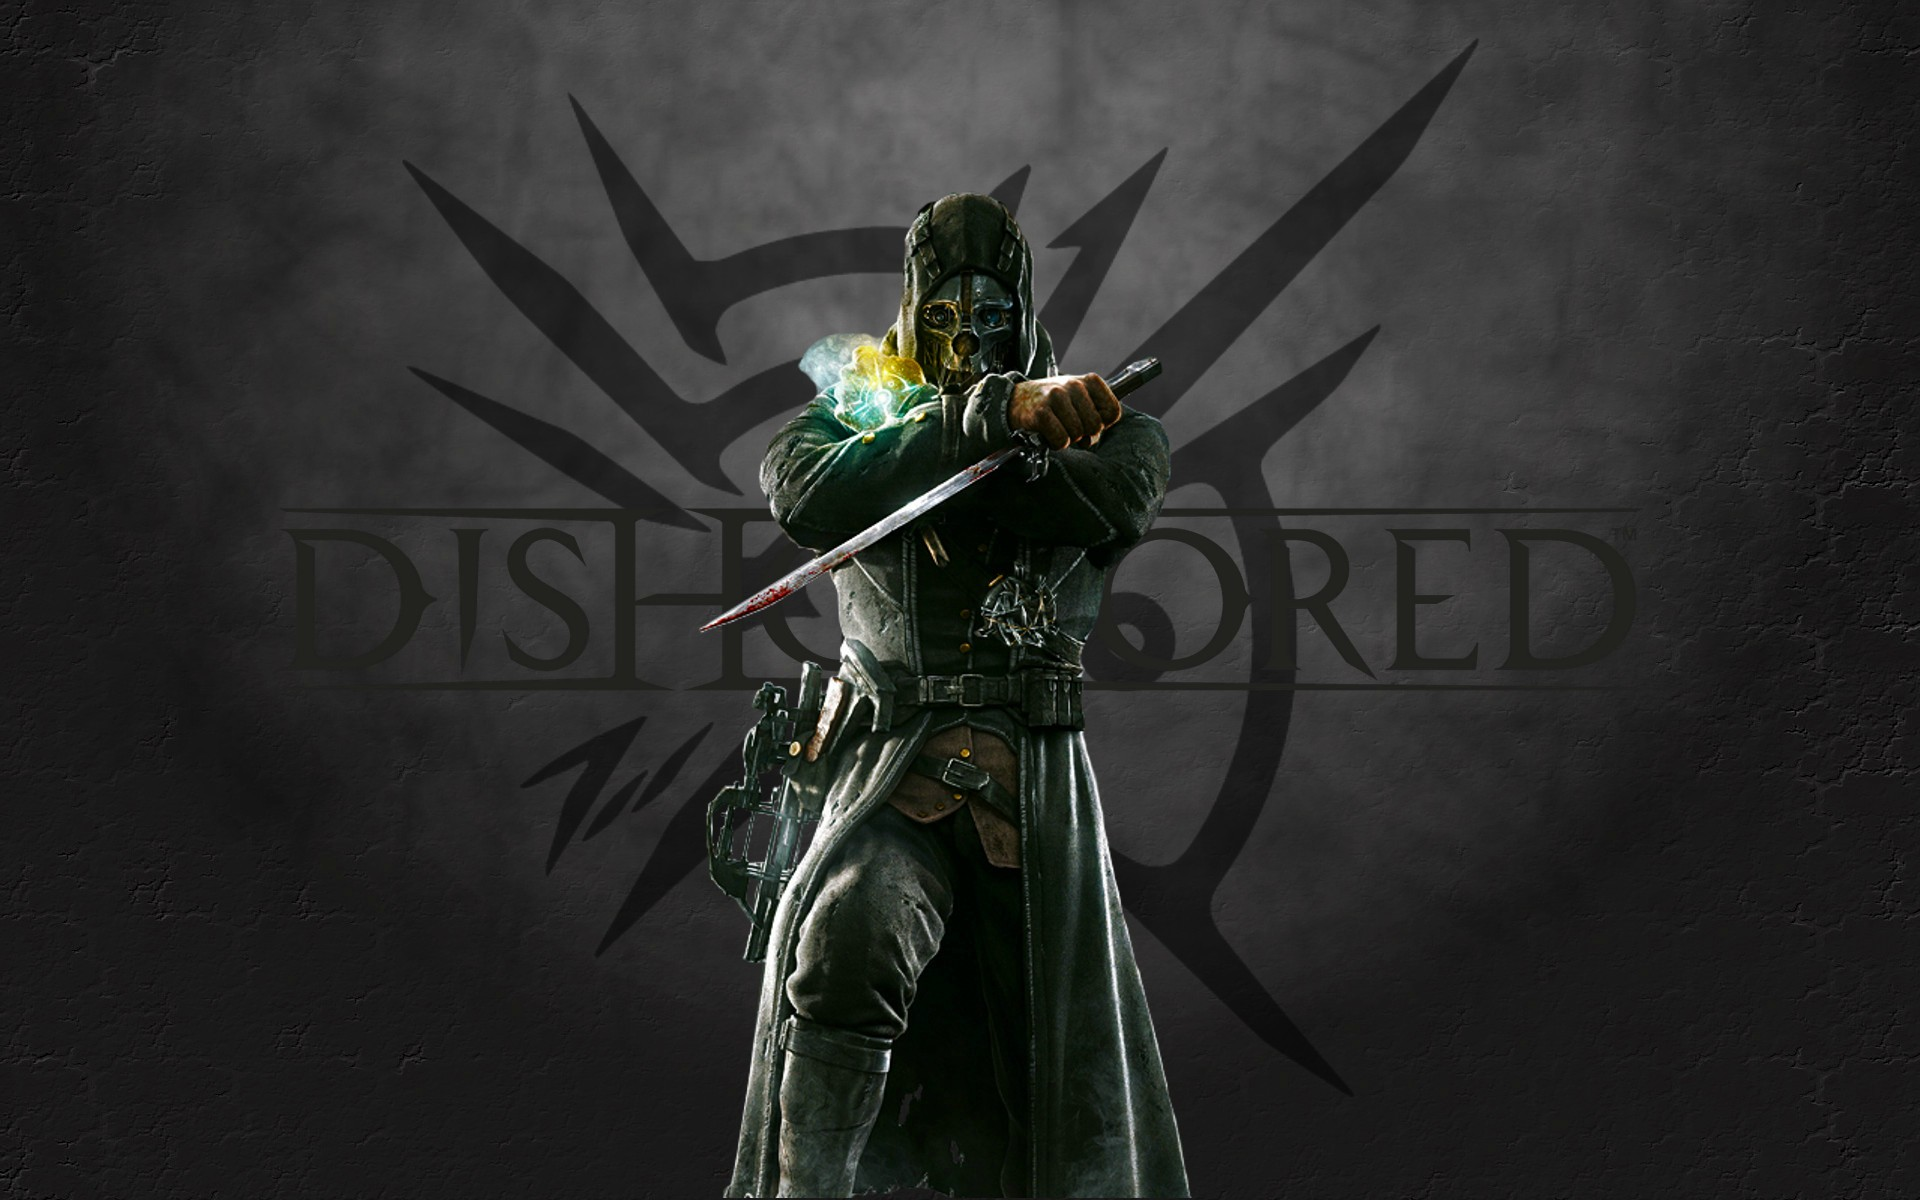 Gorgeous Dishonored 2 Wallpaper Full Hd Pictures